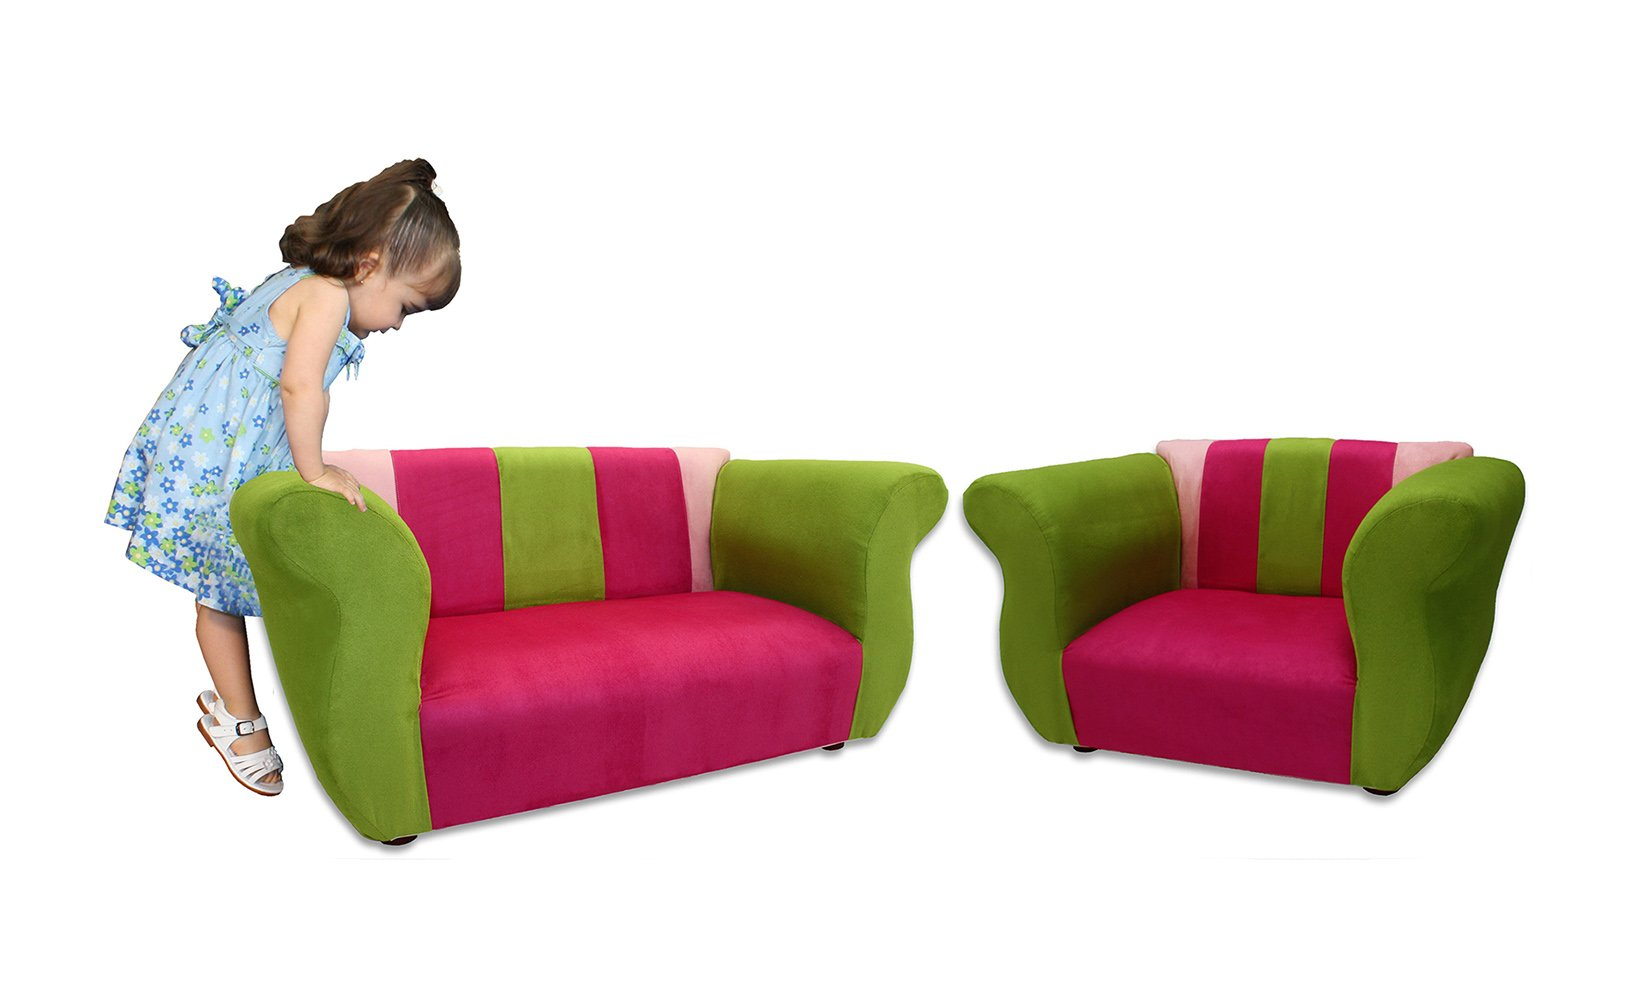 KEET Sofa and Chair Fancy Kid's Set, Pink/Green